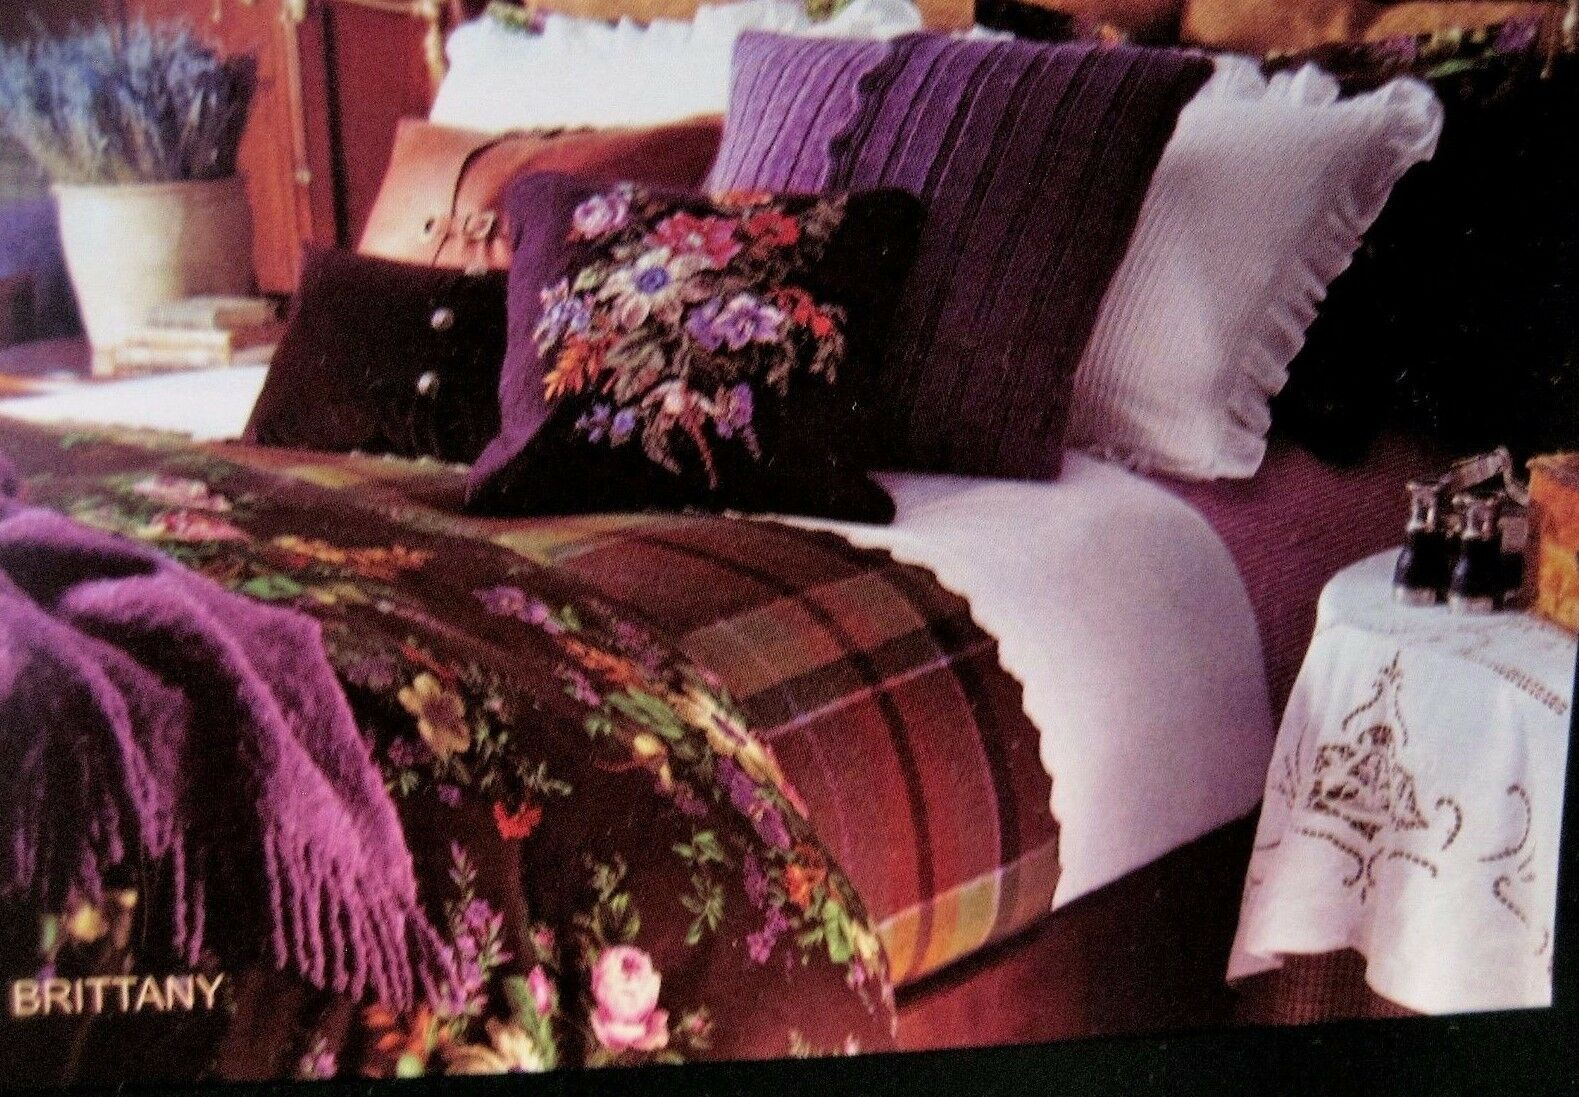 Ralph Lauren Brittany Floral Eggplant Purple Needlepoint Wool Square Toss Pillow